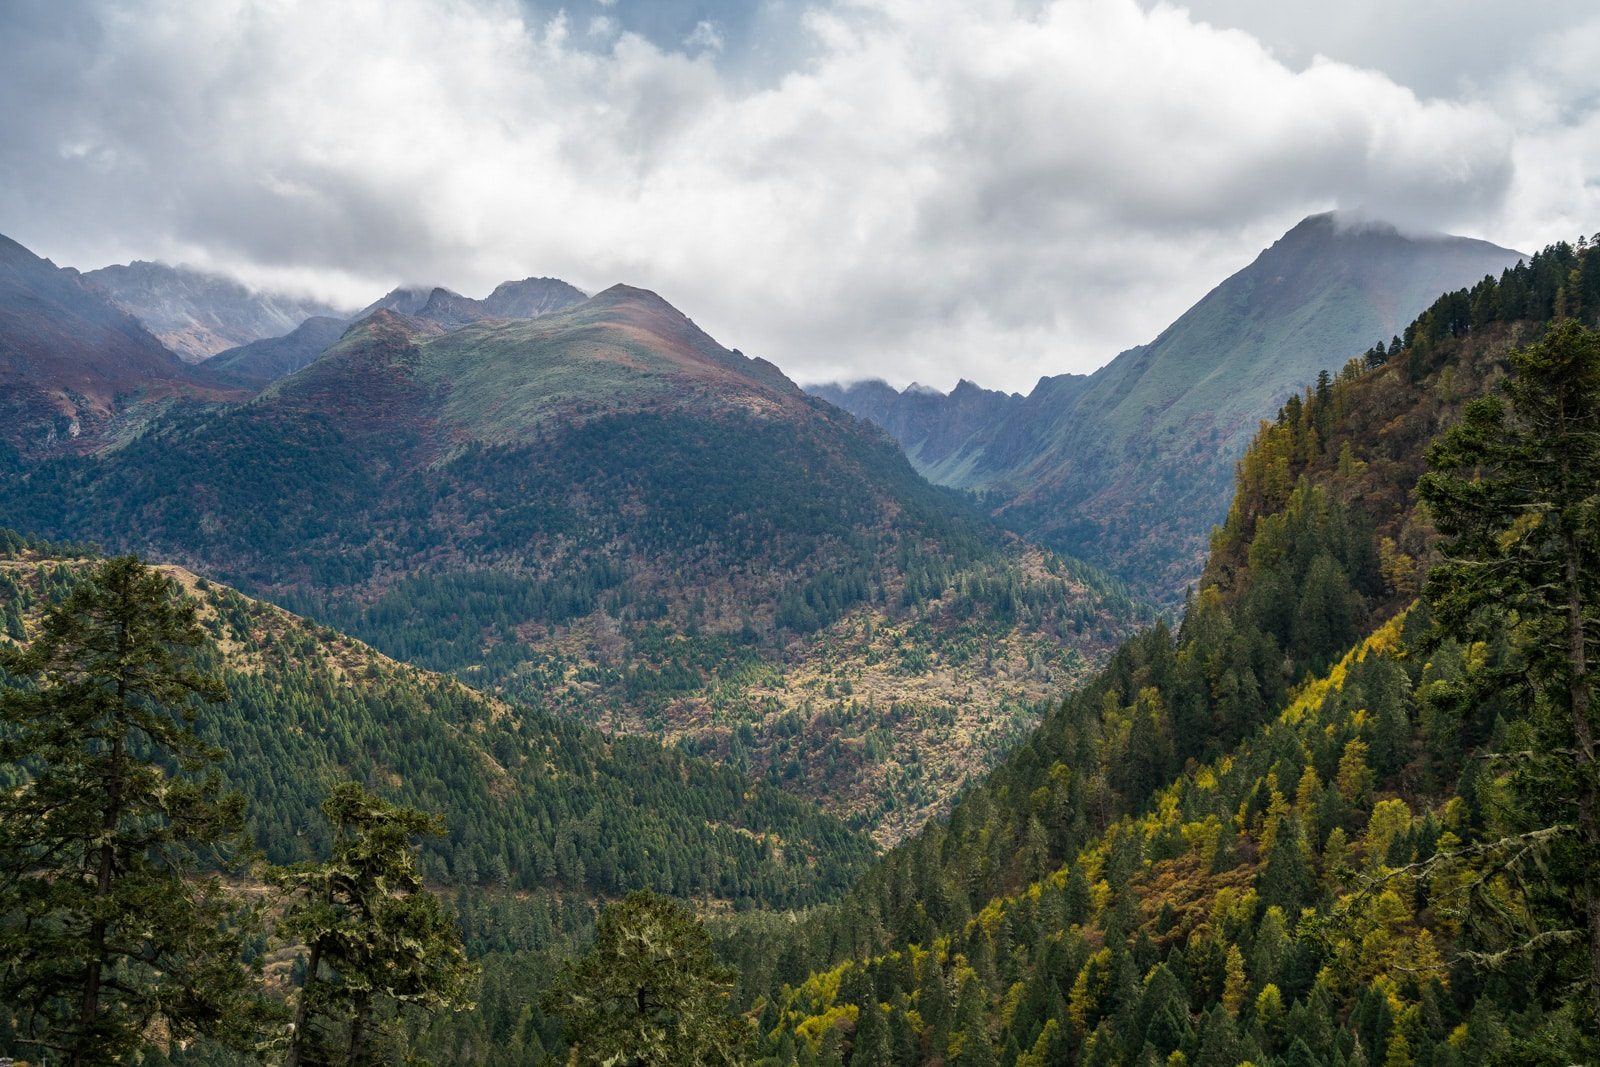 Stunning photos of Bhutan - View on the Gasa to Laya trek - Lost With Purpose travel blog